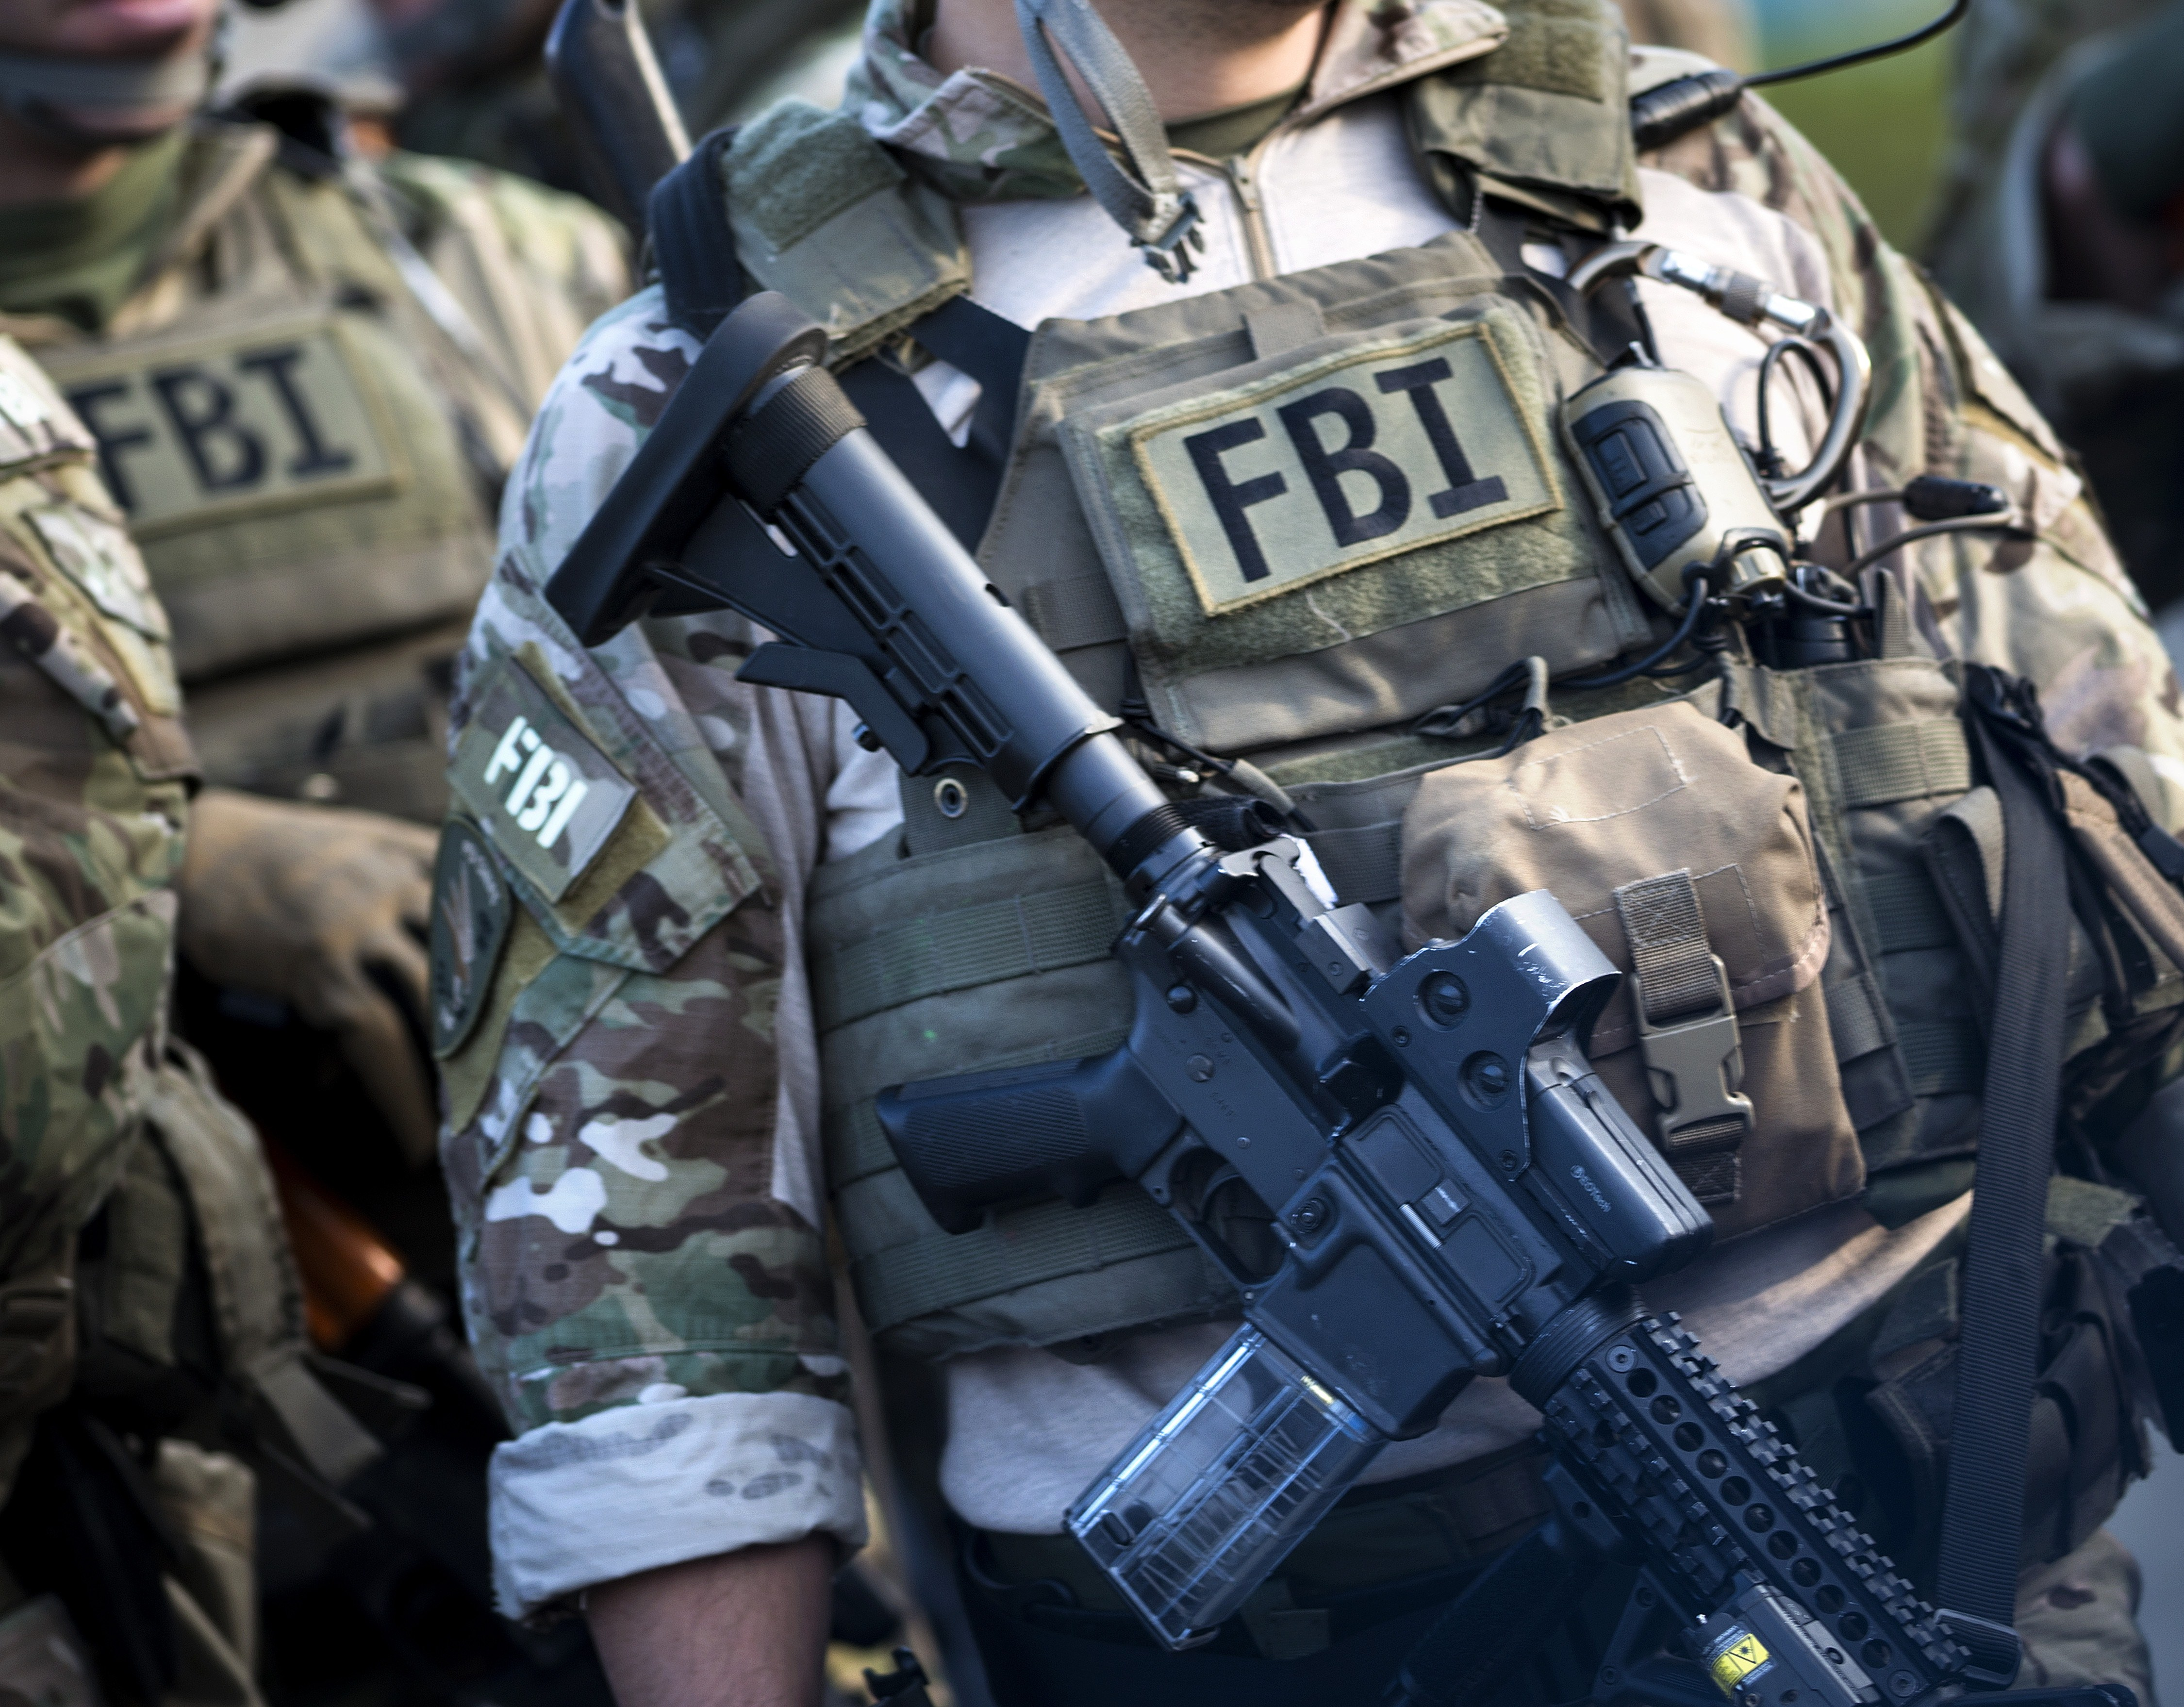 b6ece057430 The Ron Paul Institute for Peace and Prosperity : Yes, the FBI is ...